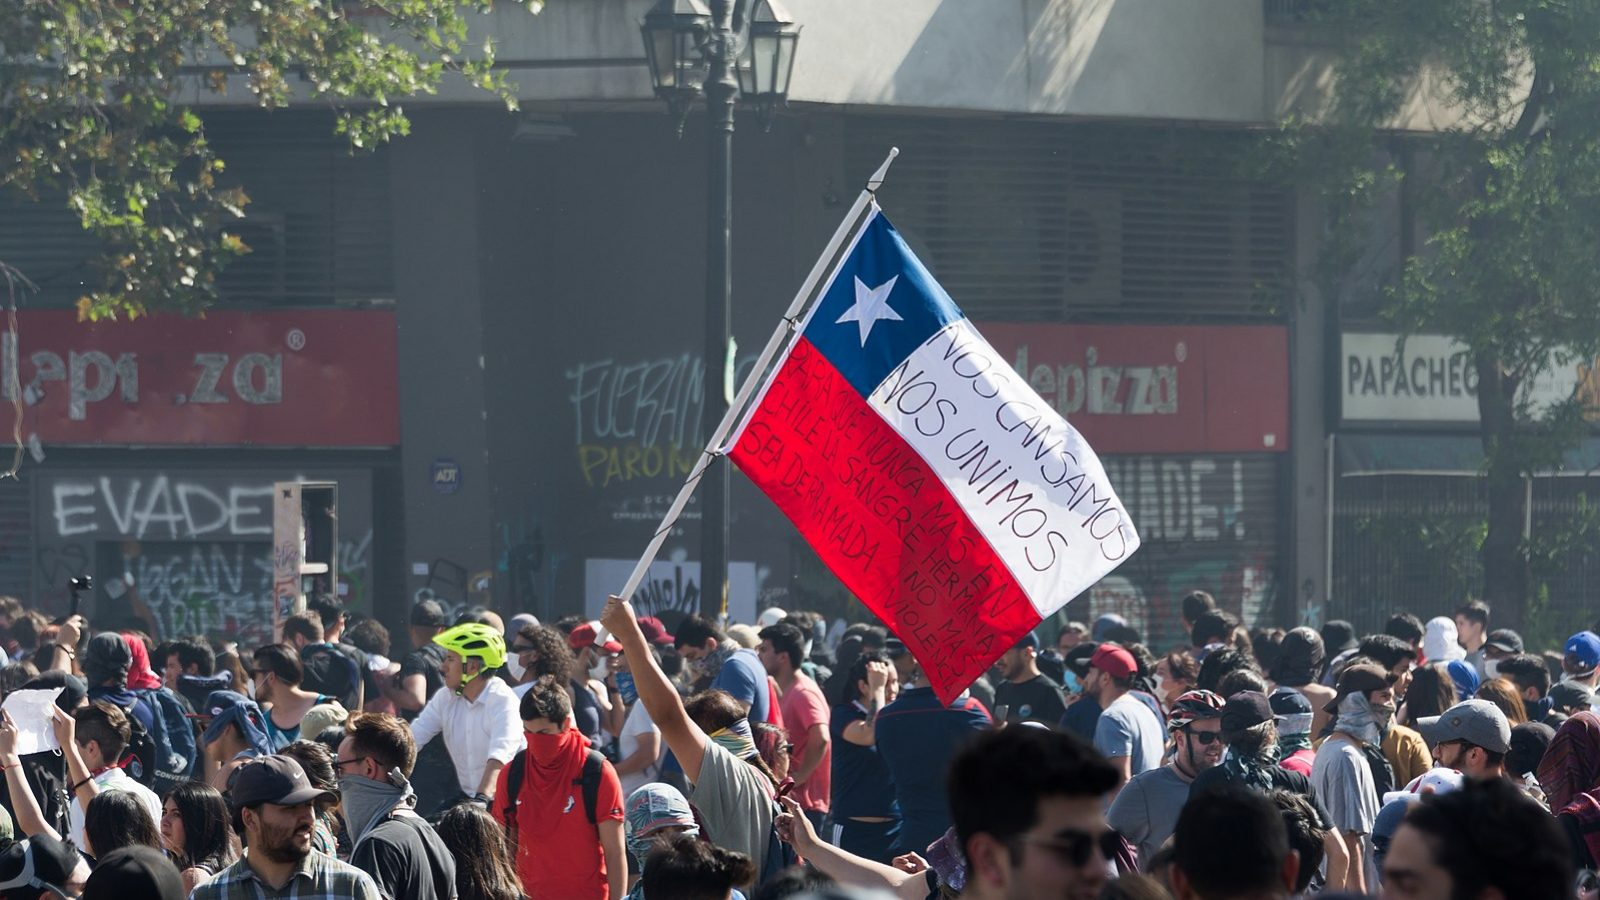 A Chilean flag is raised in the 2019 Protest in Santiago